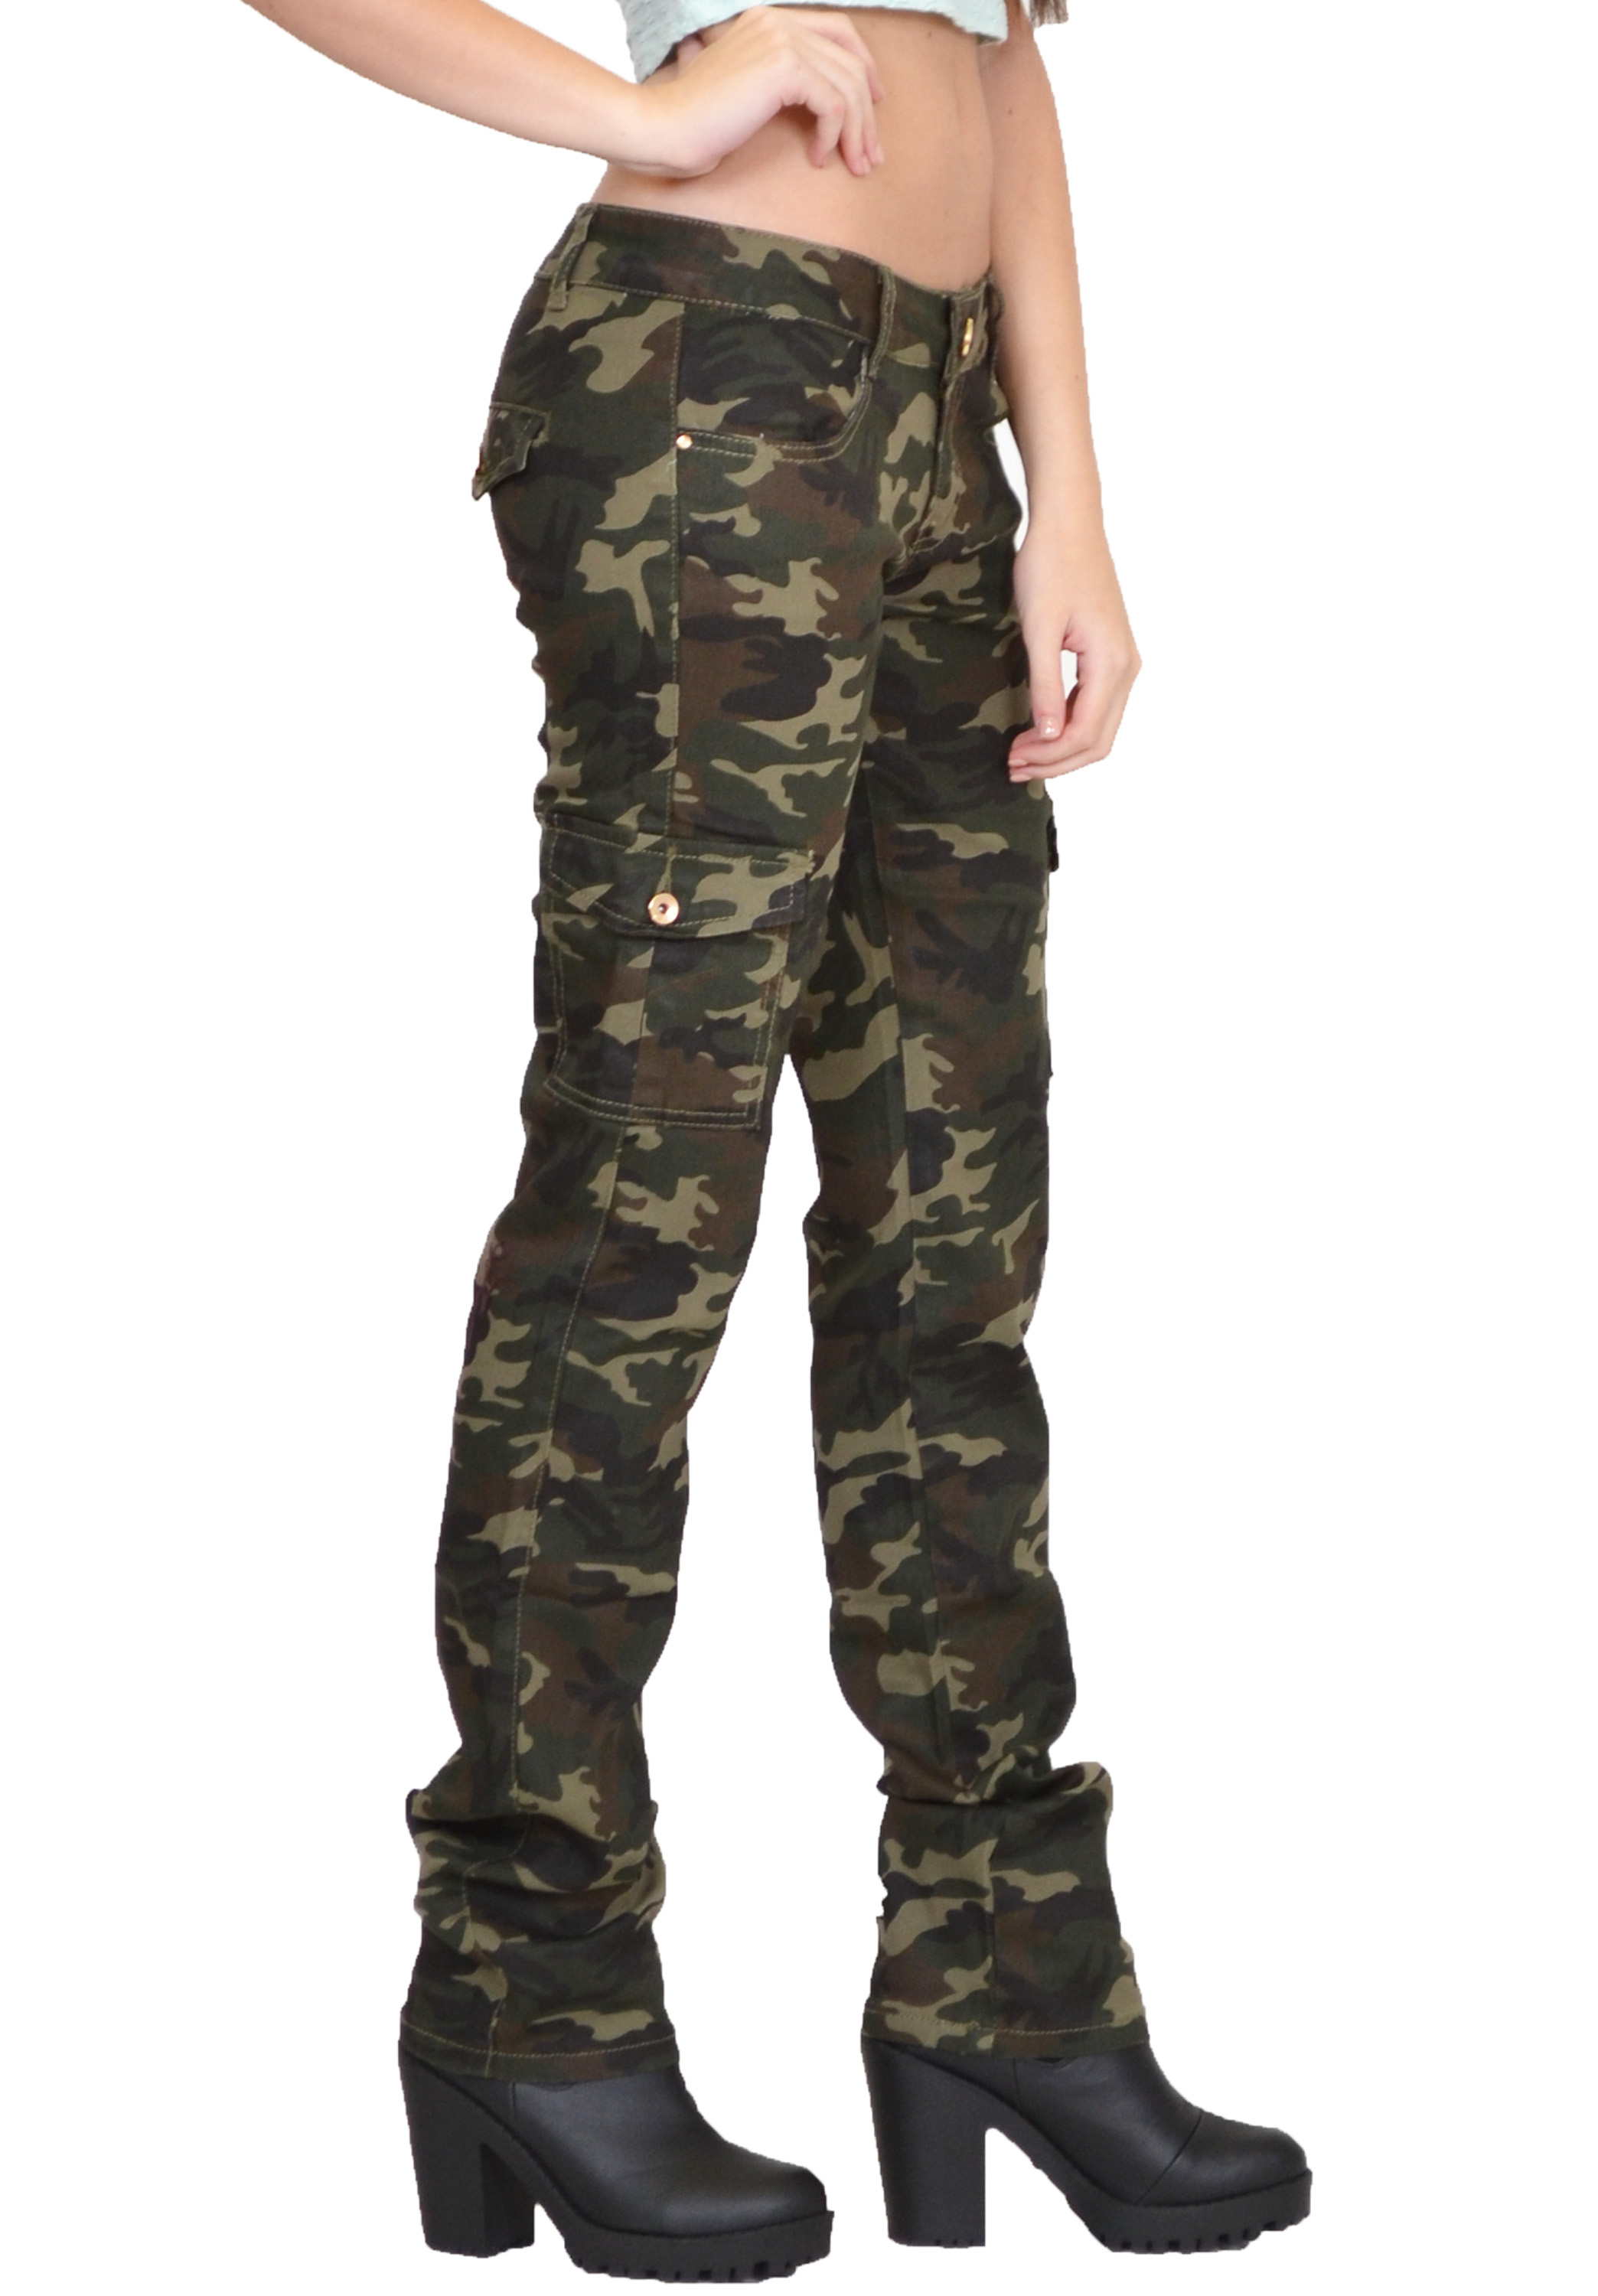 Womens Army Military Green Camouflage Slim Fit Combat Trousers ...